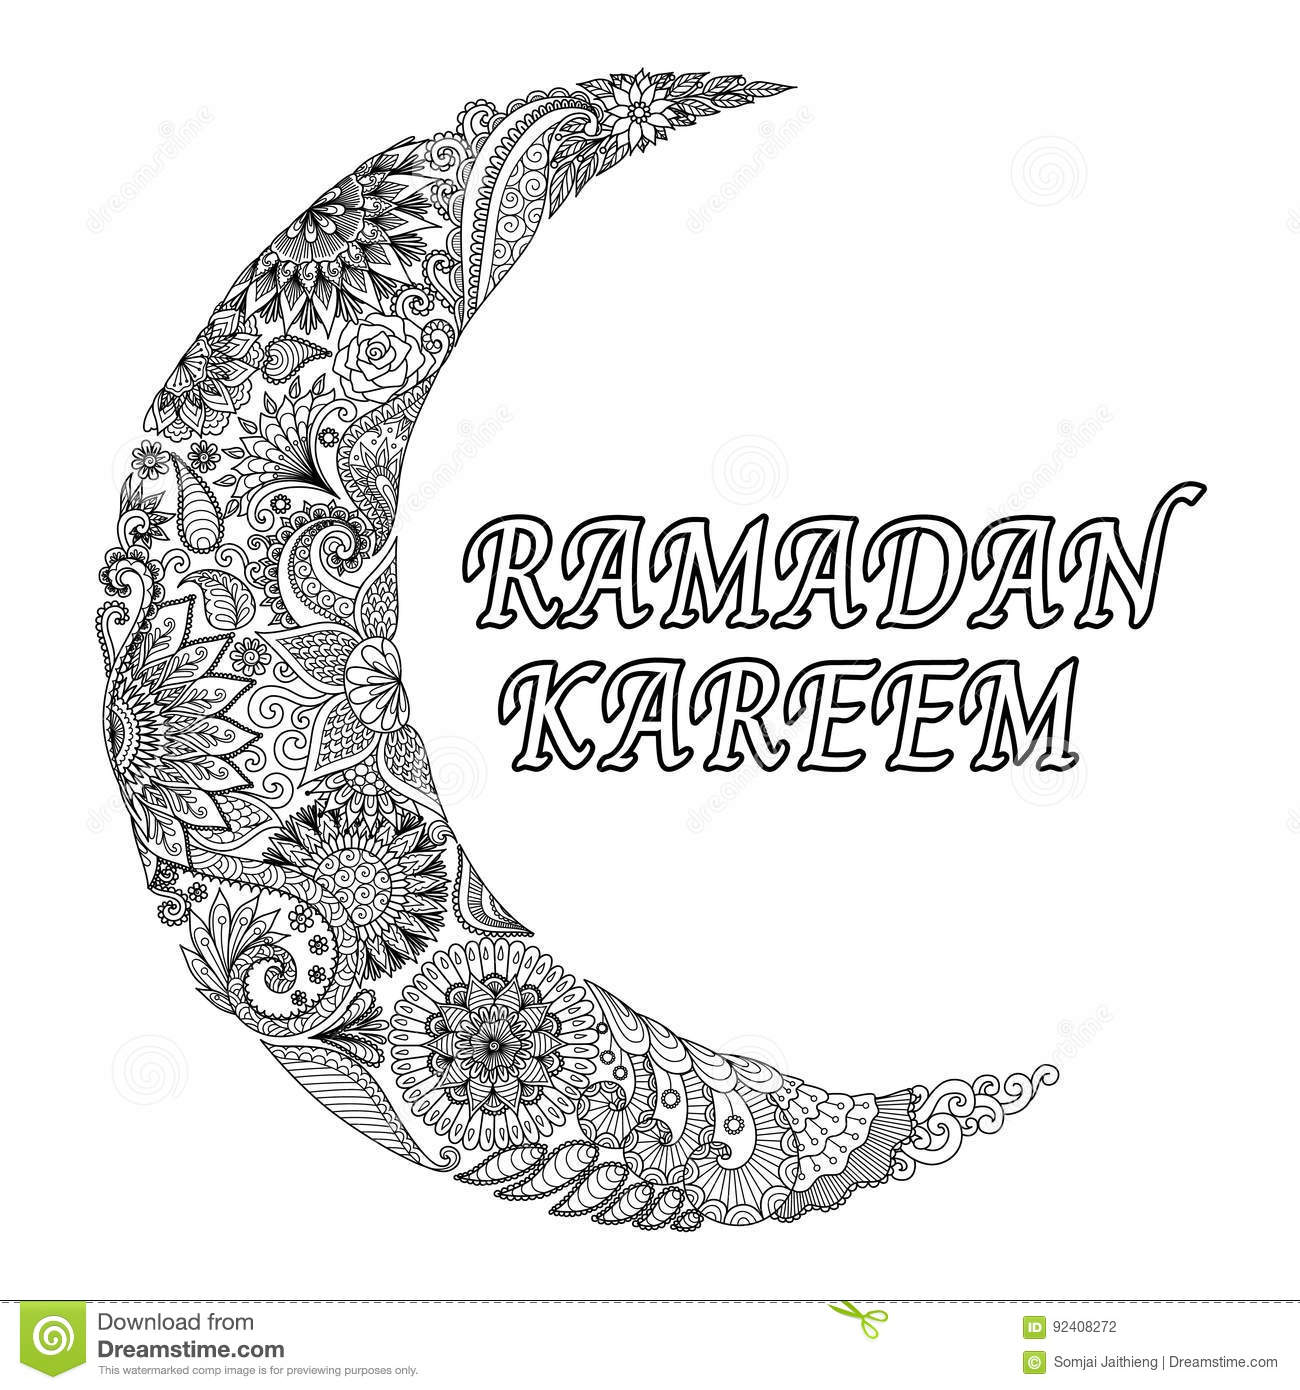 beautiful flowers laying in the shape of crescent moon with the